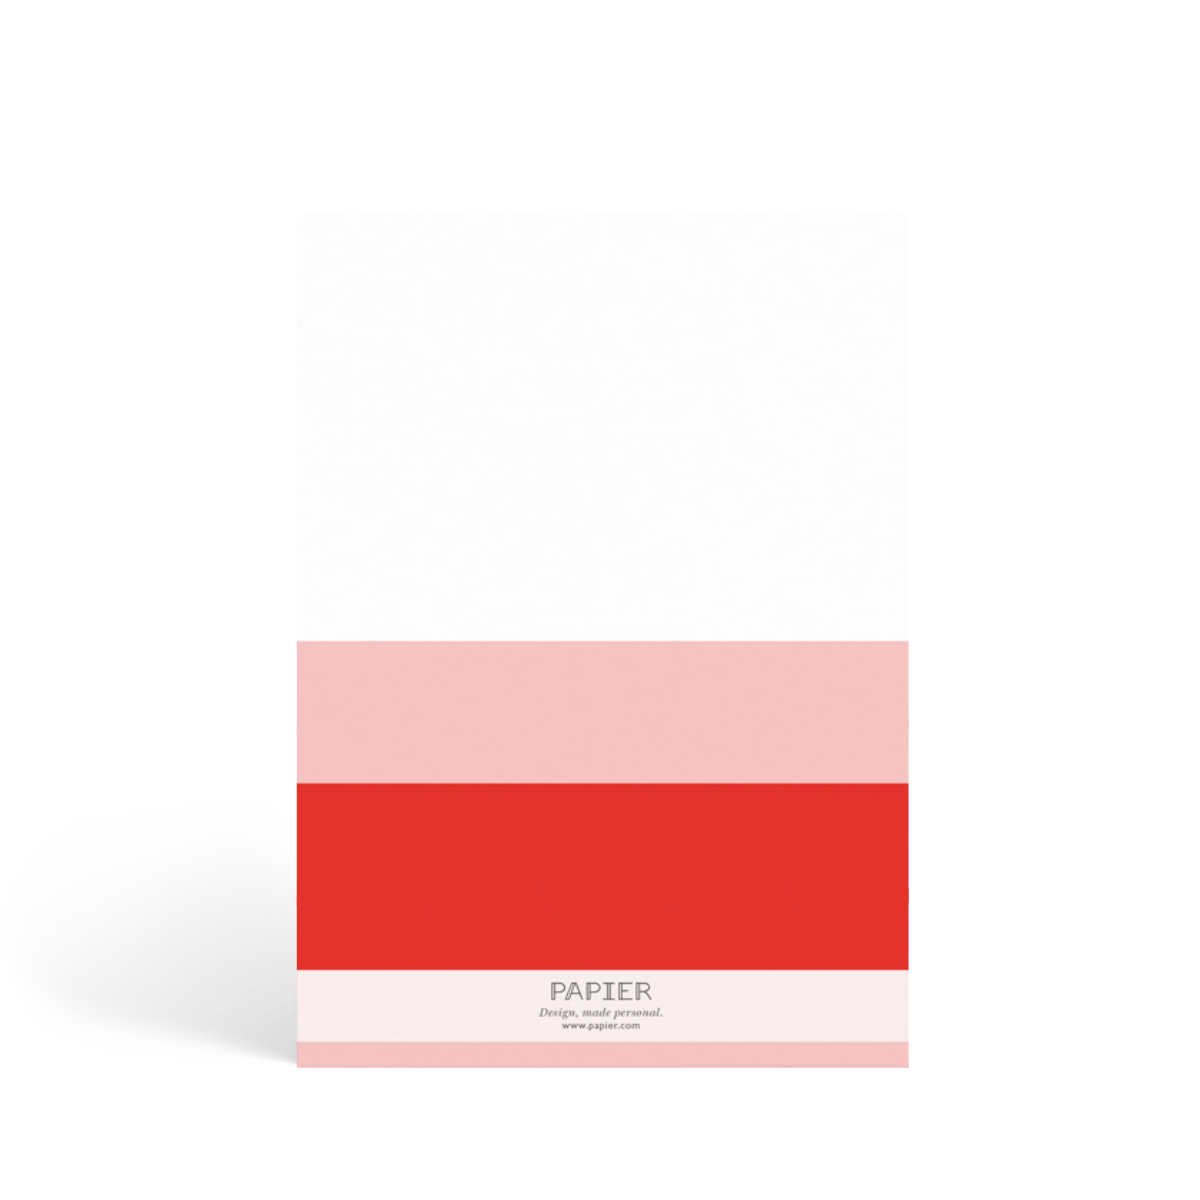 Https%3a%2f%2fwww.papier.com%2fproduct image%2f72311%2f5%2fstriped colourblock pink red 17040 back 1555527581.png?ixlib=rb 1.1